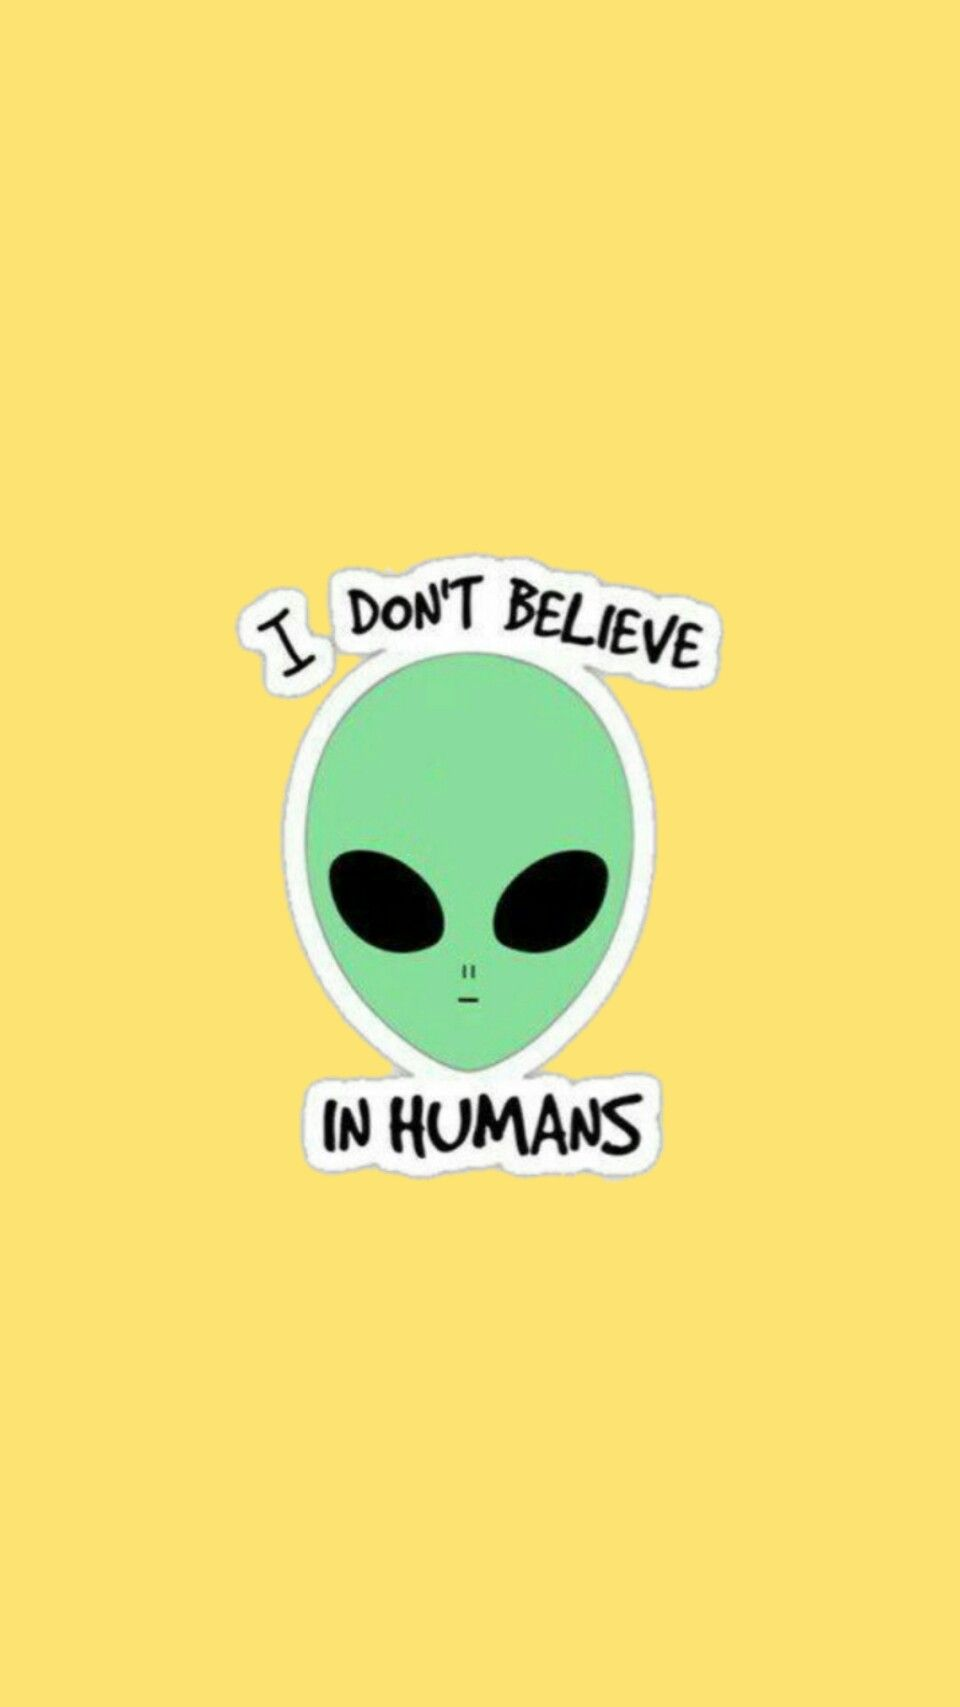 Alien Wallpaper Funny Screen Savers Screen Savers Wallpapers Screen Savers